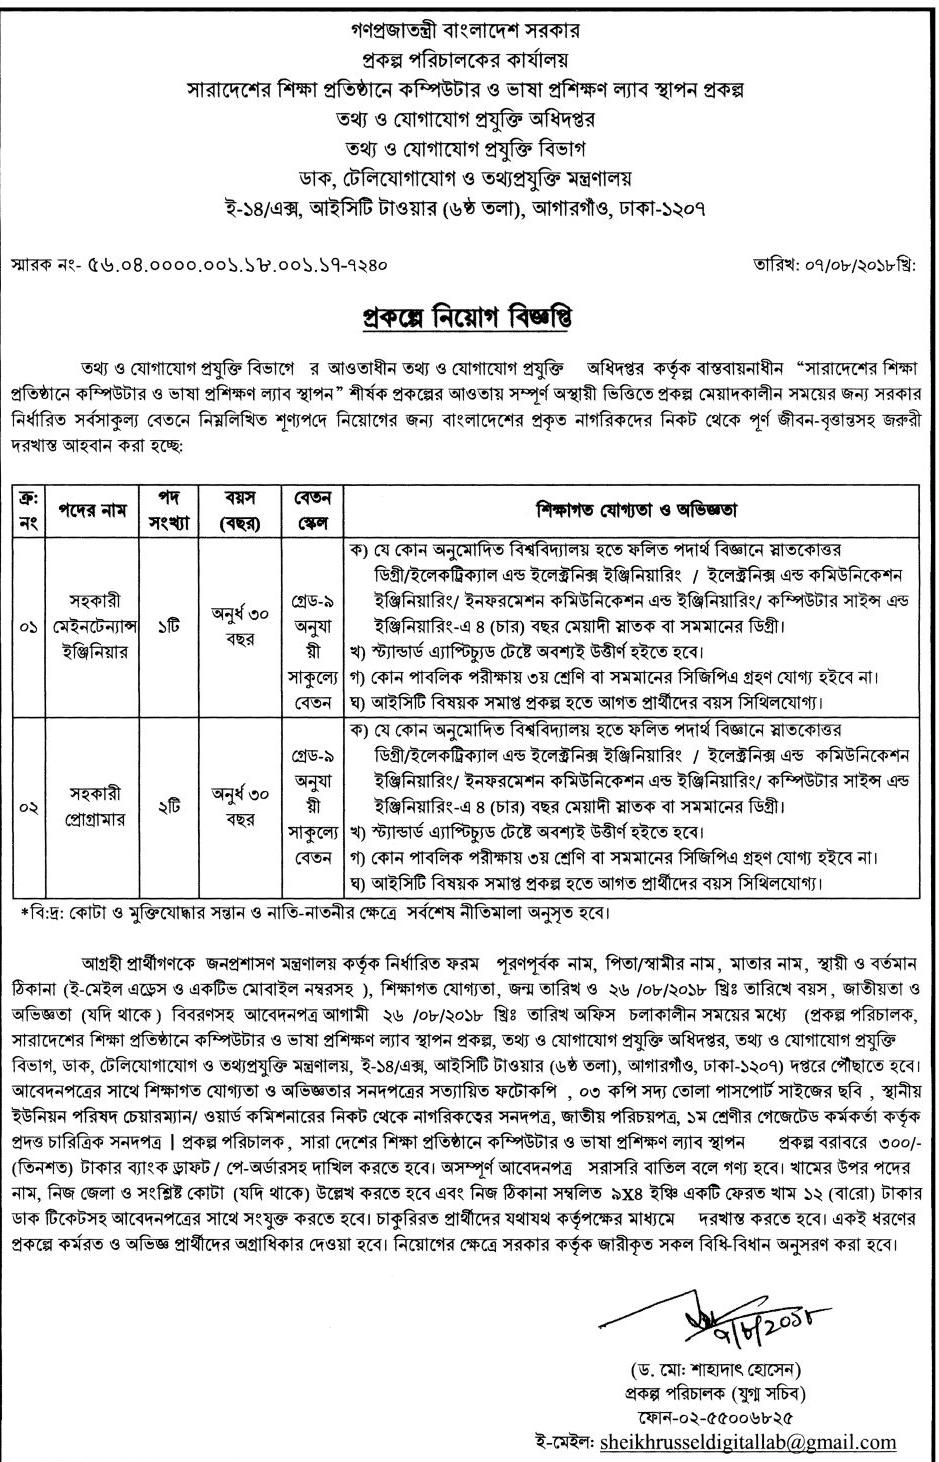 Directorate of Information and Communication Technology (ICT)Job Circular 2018